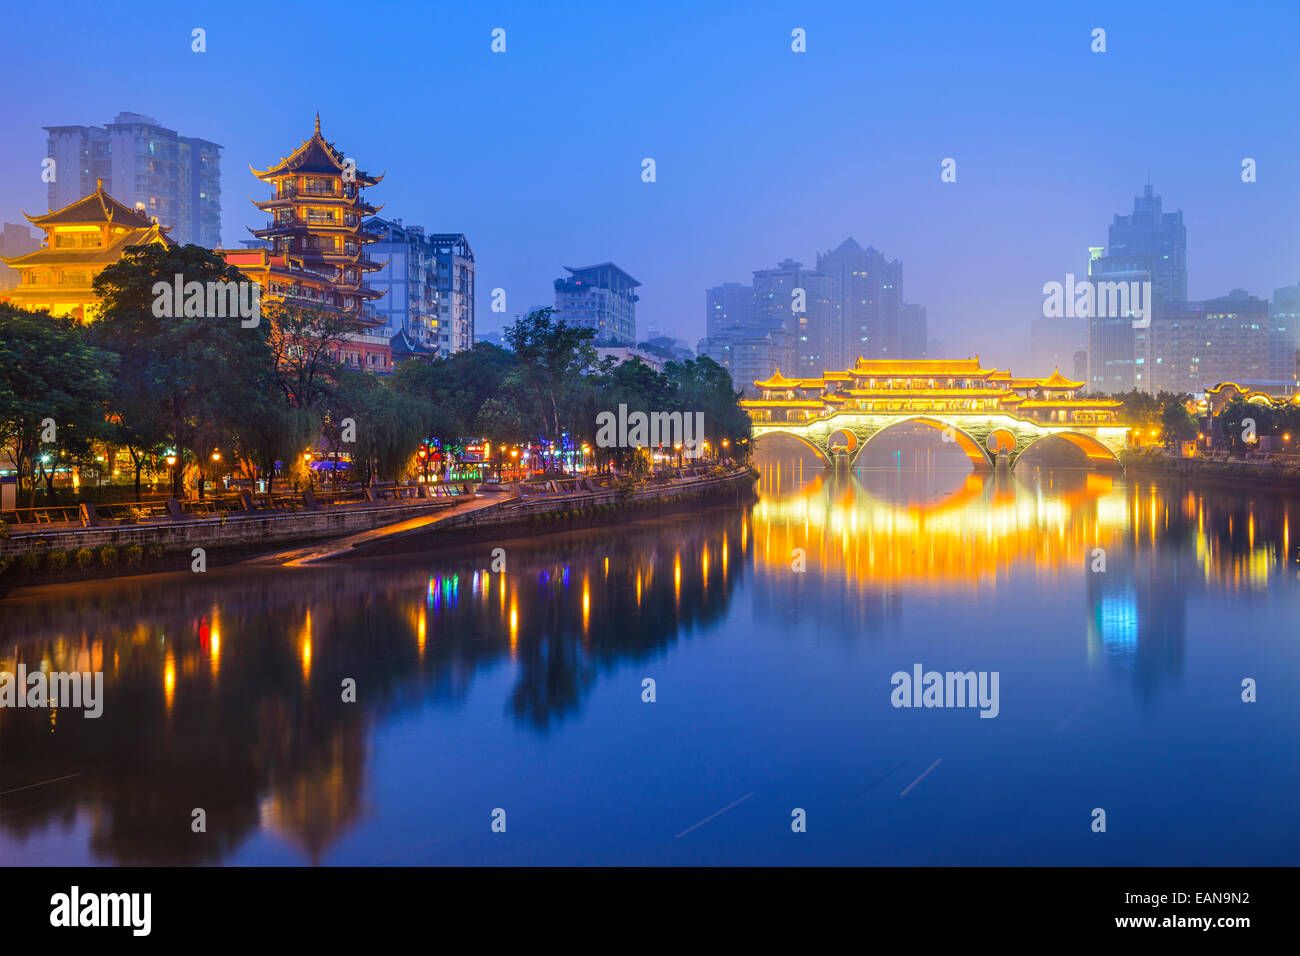 Chengdu, Sichuan, China cityscape over the Jin River. - Stock Image